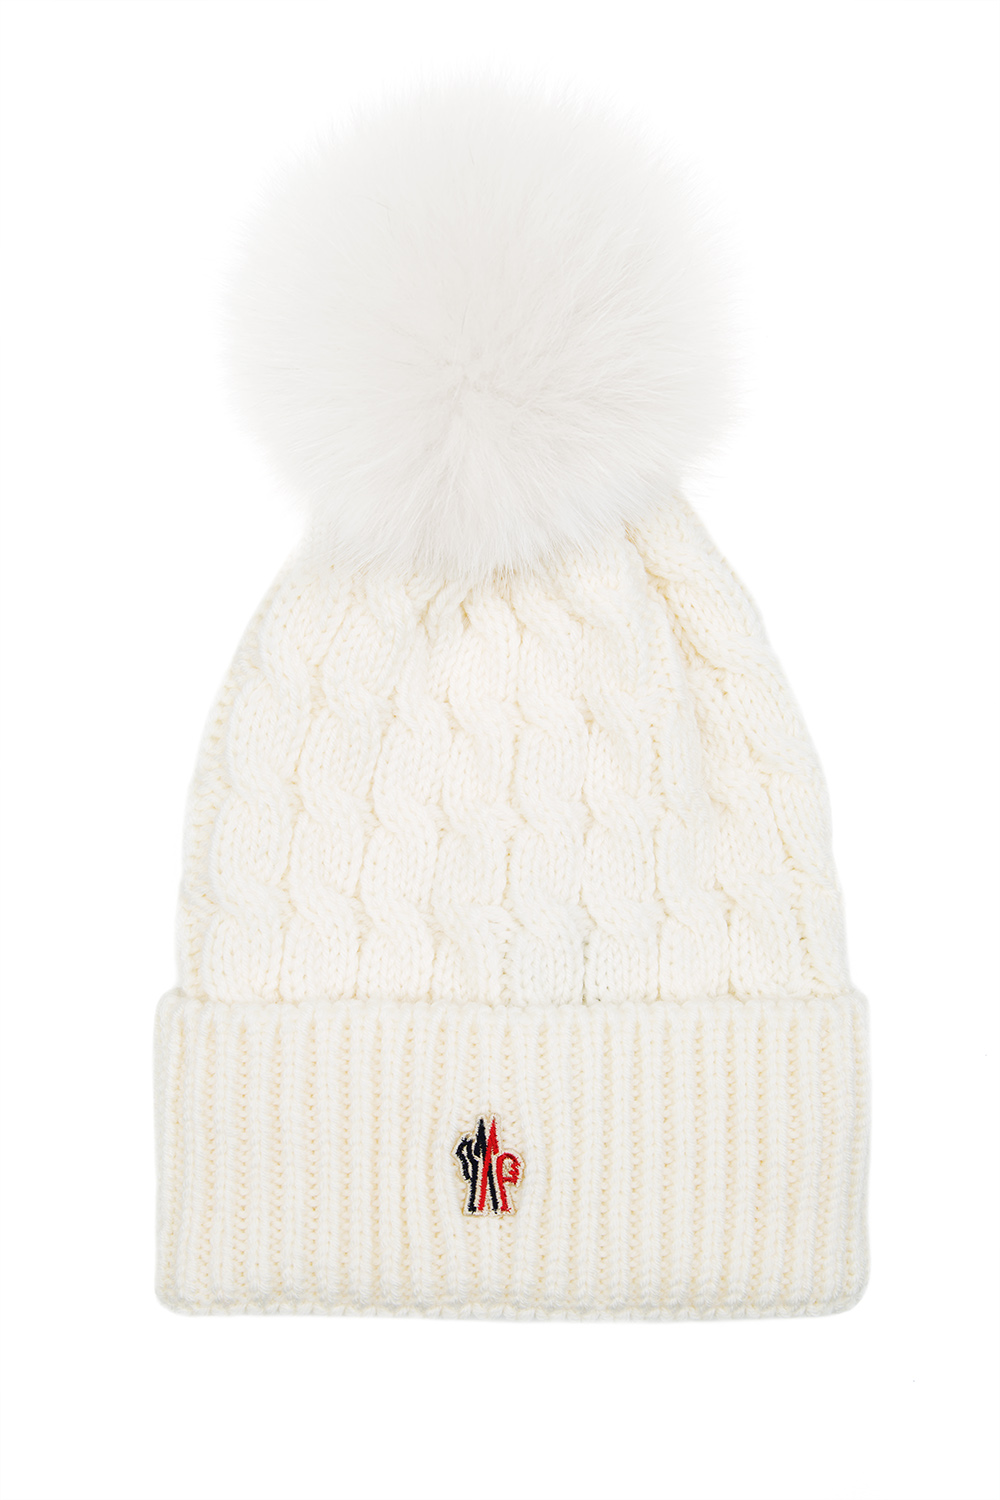 6f8237d4526 Moncler Grenoble Women s Pom-Pom Beanie Hat Cream